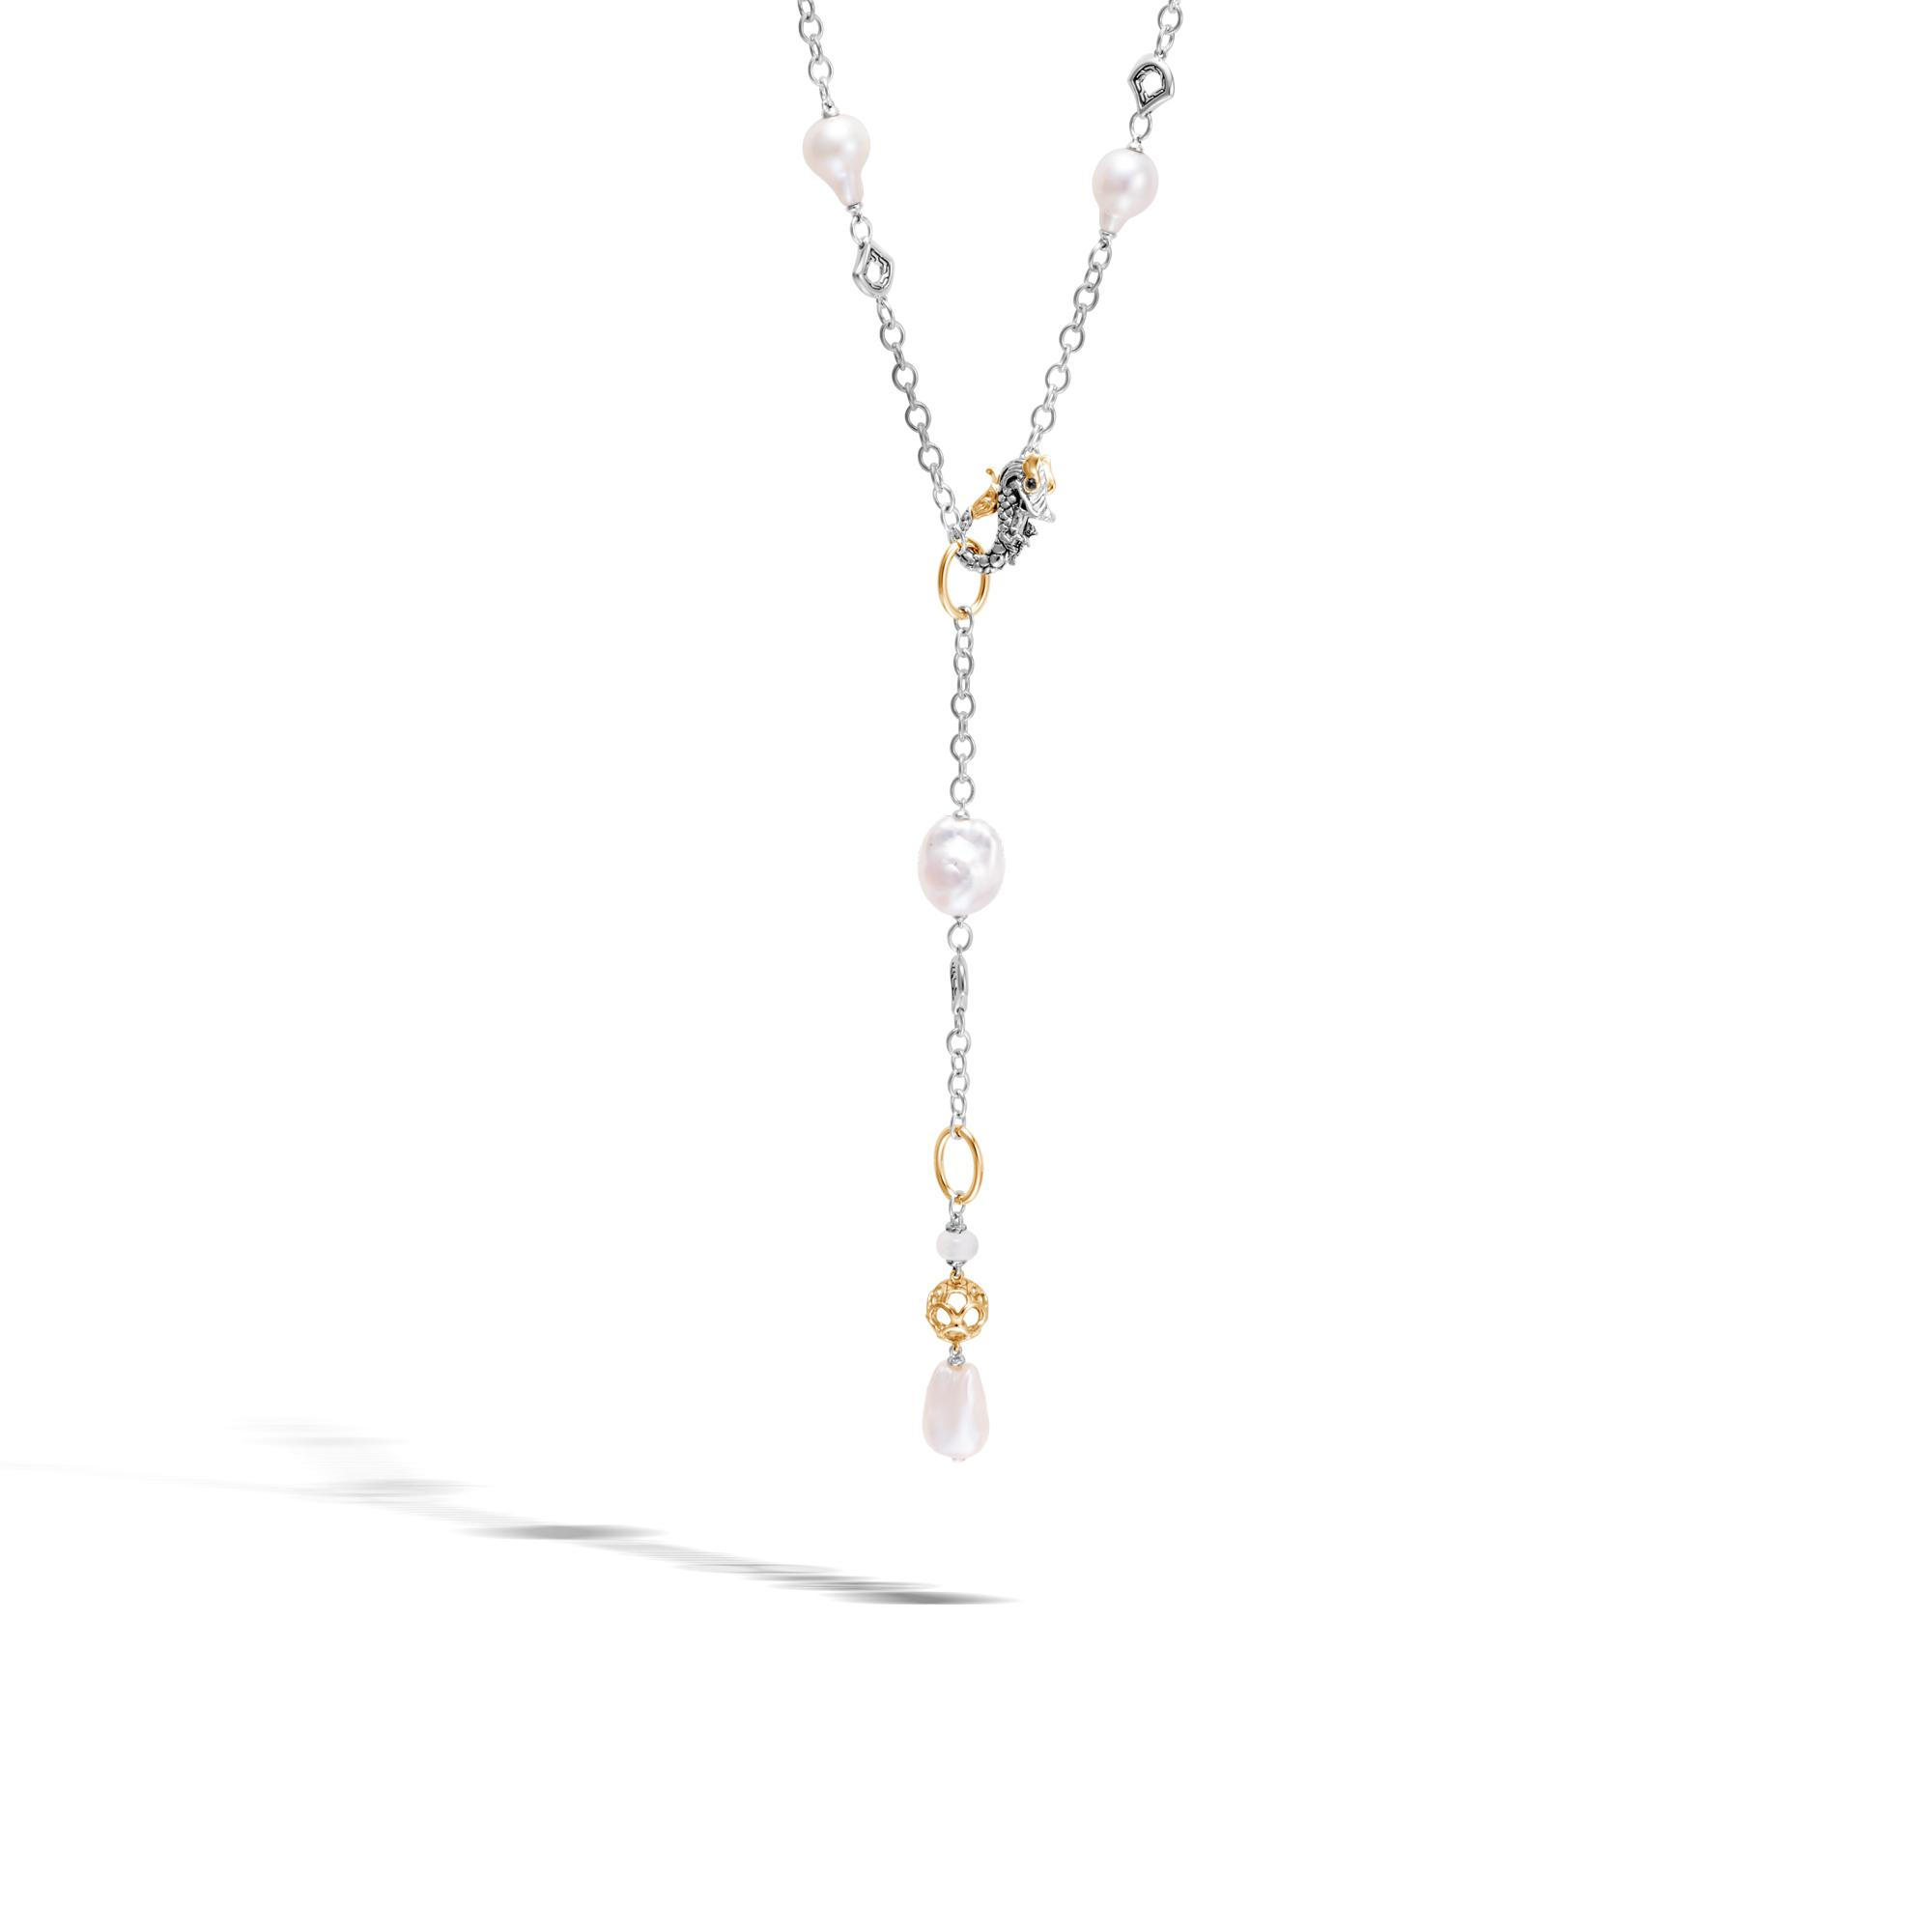 John Hardy Pendant Necklace With White Fresh Water Pearl qb60XSwf